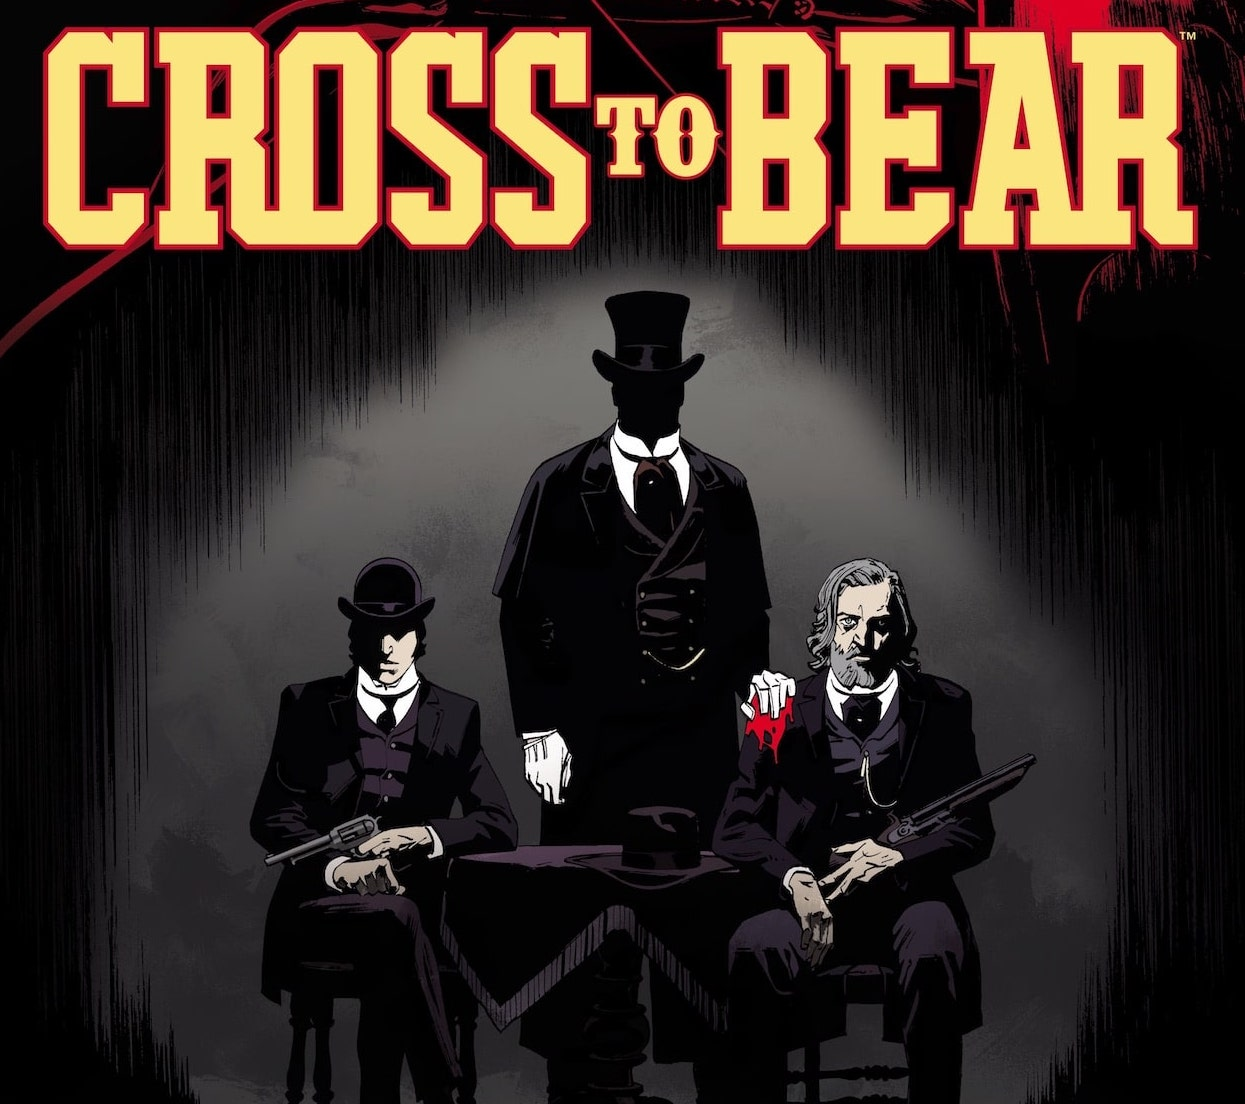 AfterShock First Look: Cross to Bear #1